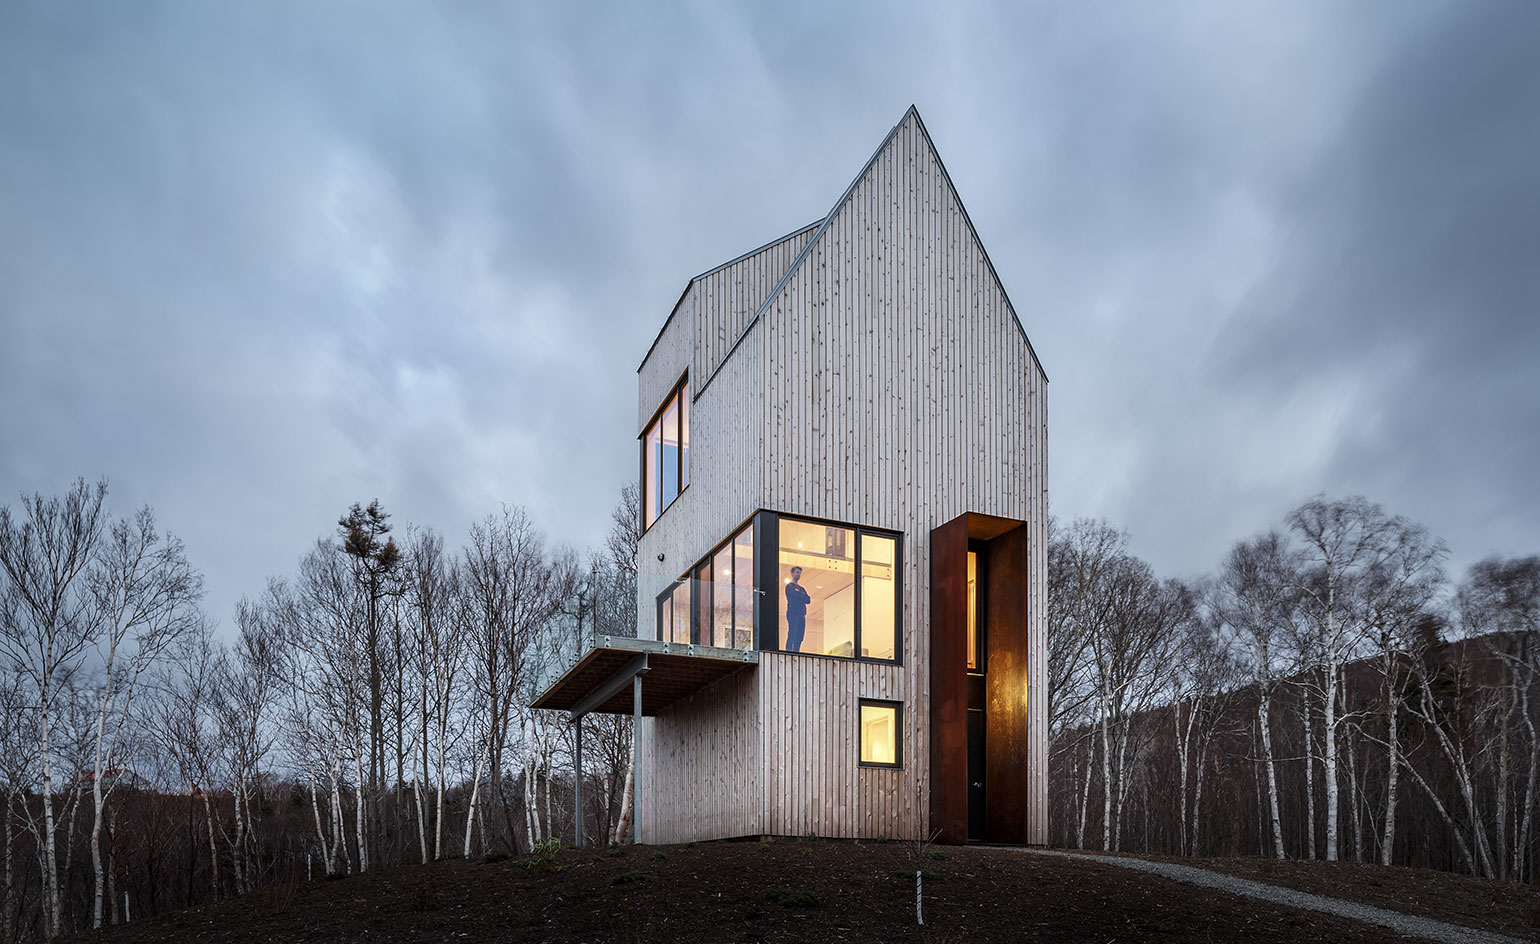 Omar gandhi and design base 8 create cape breton outpost for Local residential architects near me